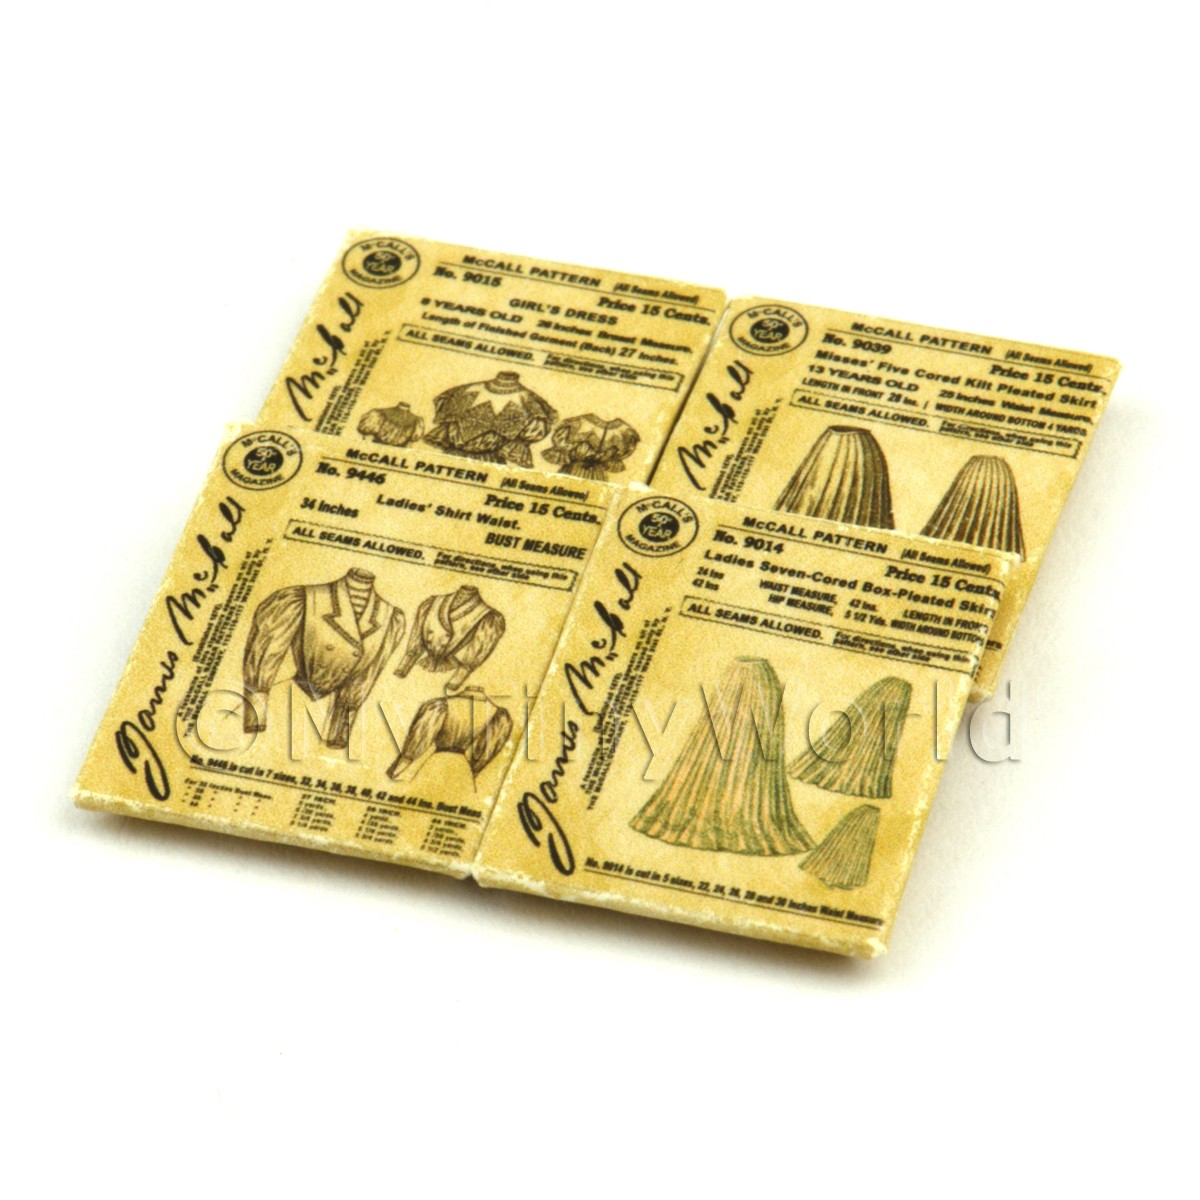 4 Dolls House Miniature Victorian Dress Pattern Packets (VDPS02)